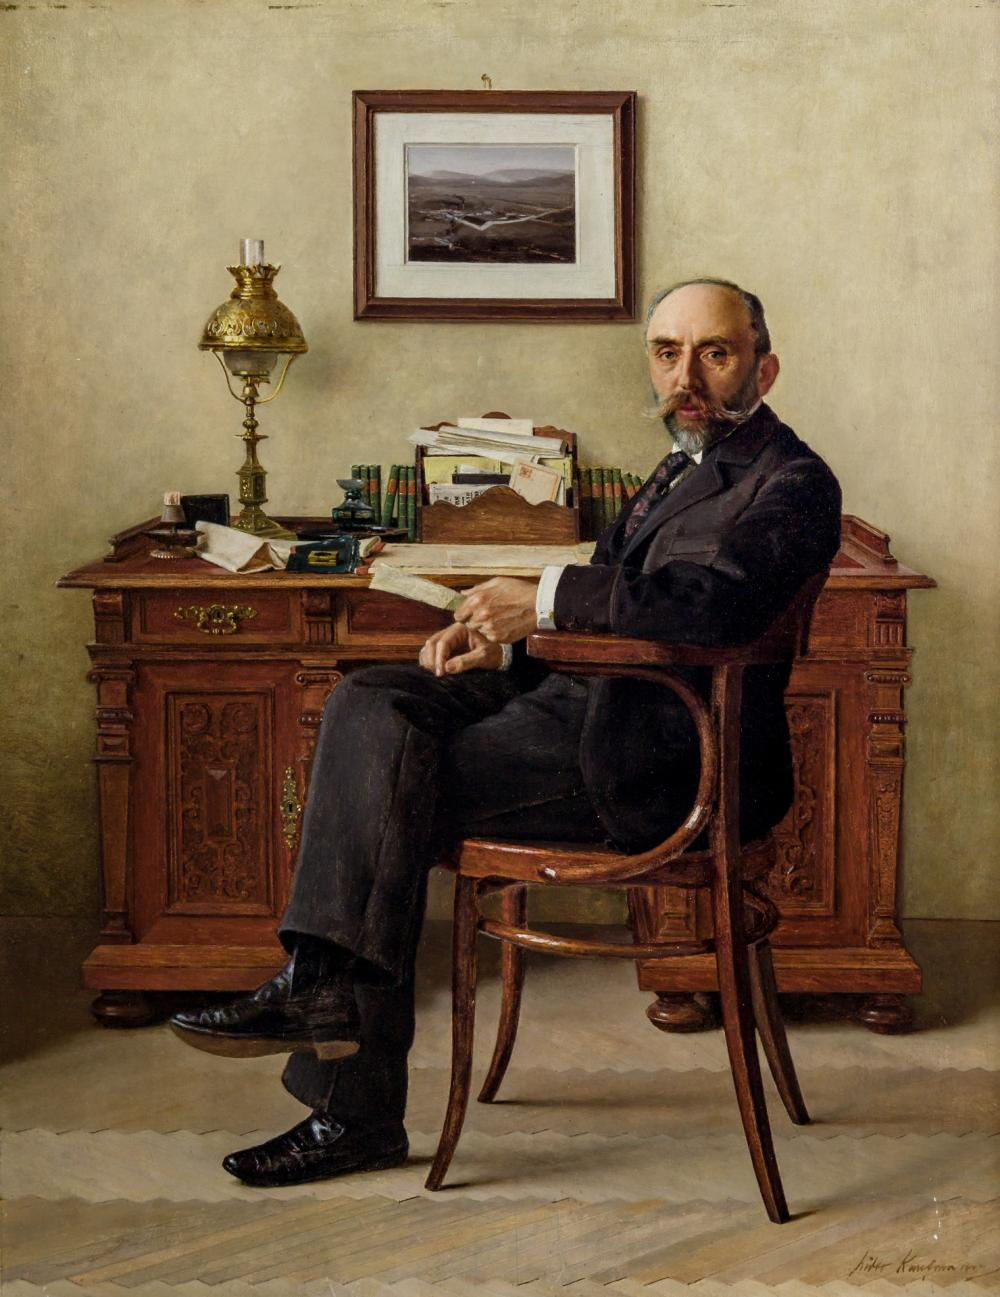 ISIDOR KAUFMANN, Austrian / Hungarian (1853-1921), Portrait of a Banker, oil on panel, 19 x 14 1/2 inches